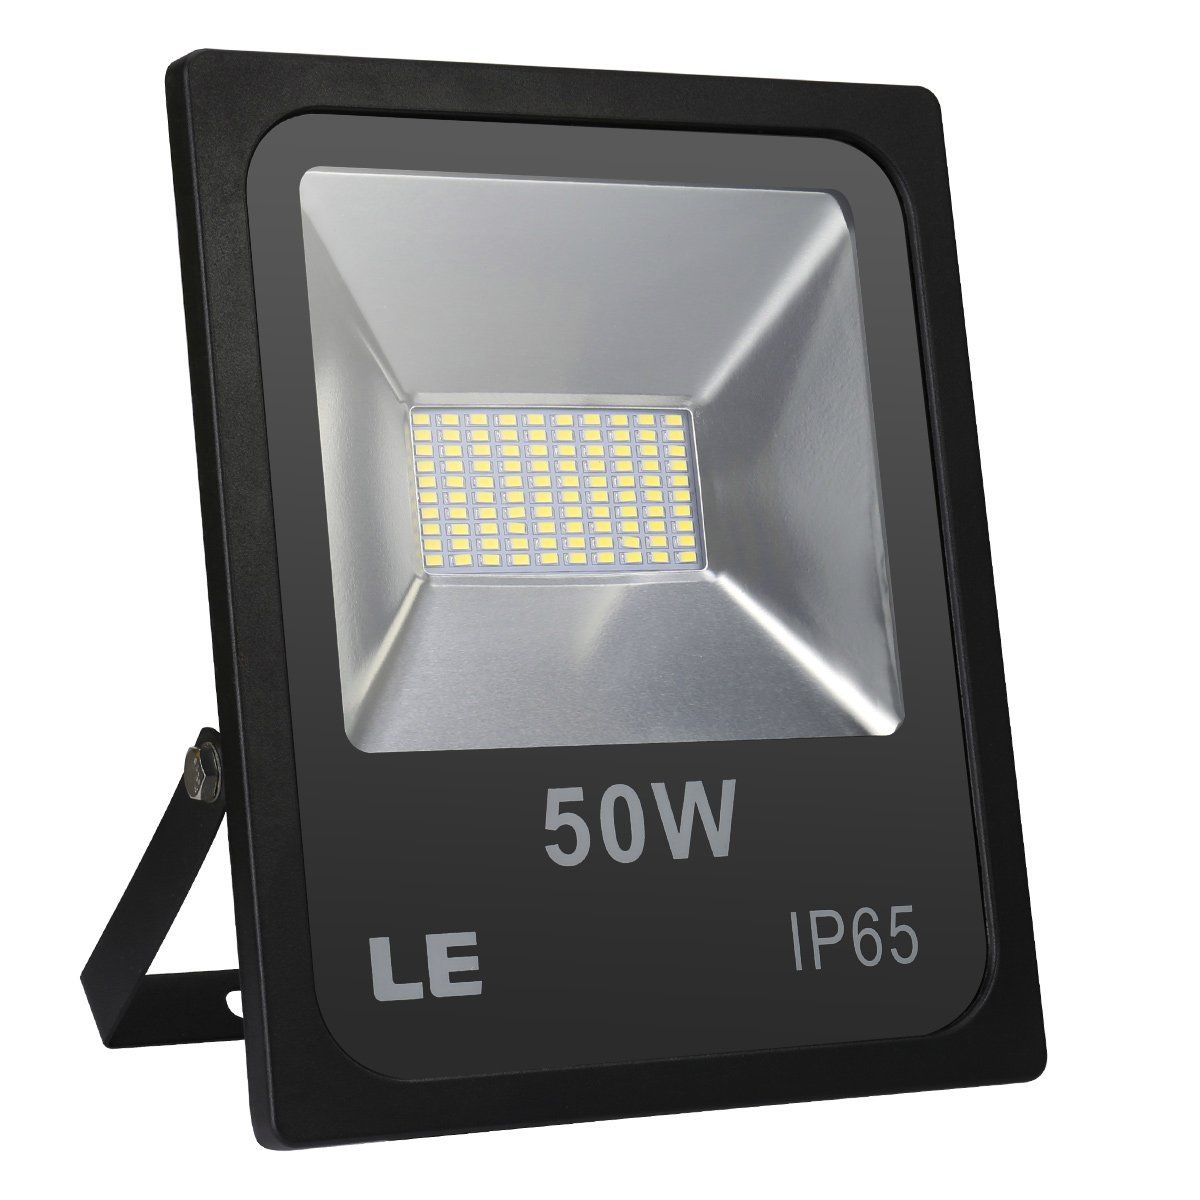 Le 50w 4000lm super bright outdoor led flood lights daylight white le 50w 4000lm super bright outdoor led flood lights daylight white 6000k 150w hpsl mozeypictures Image collections